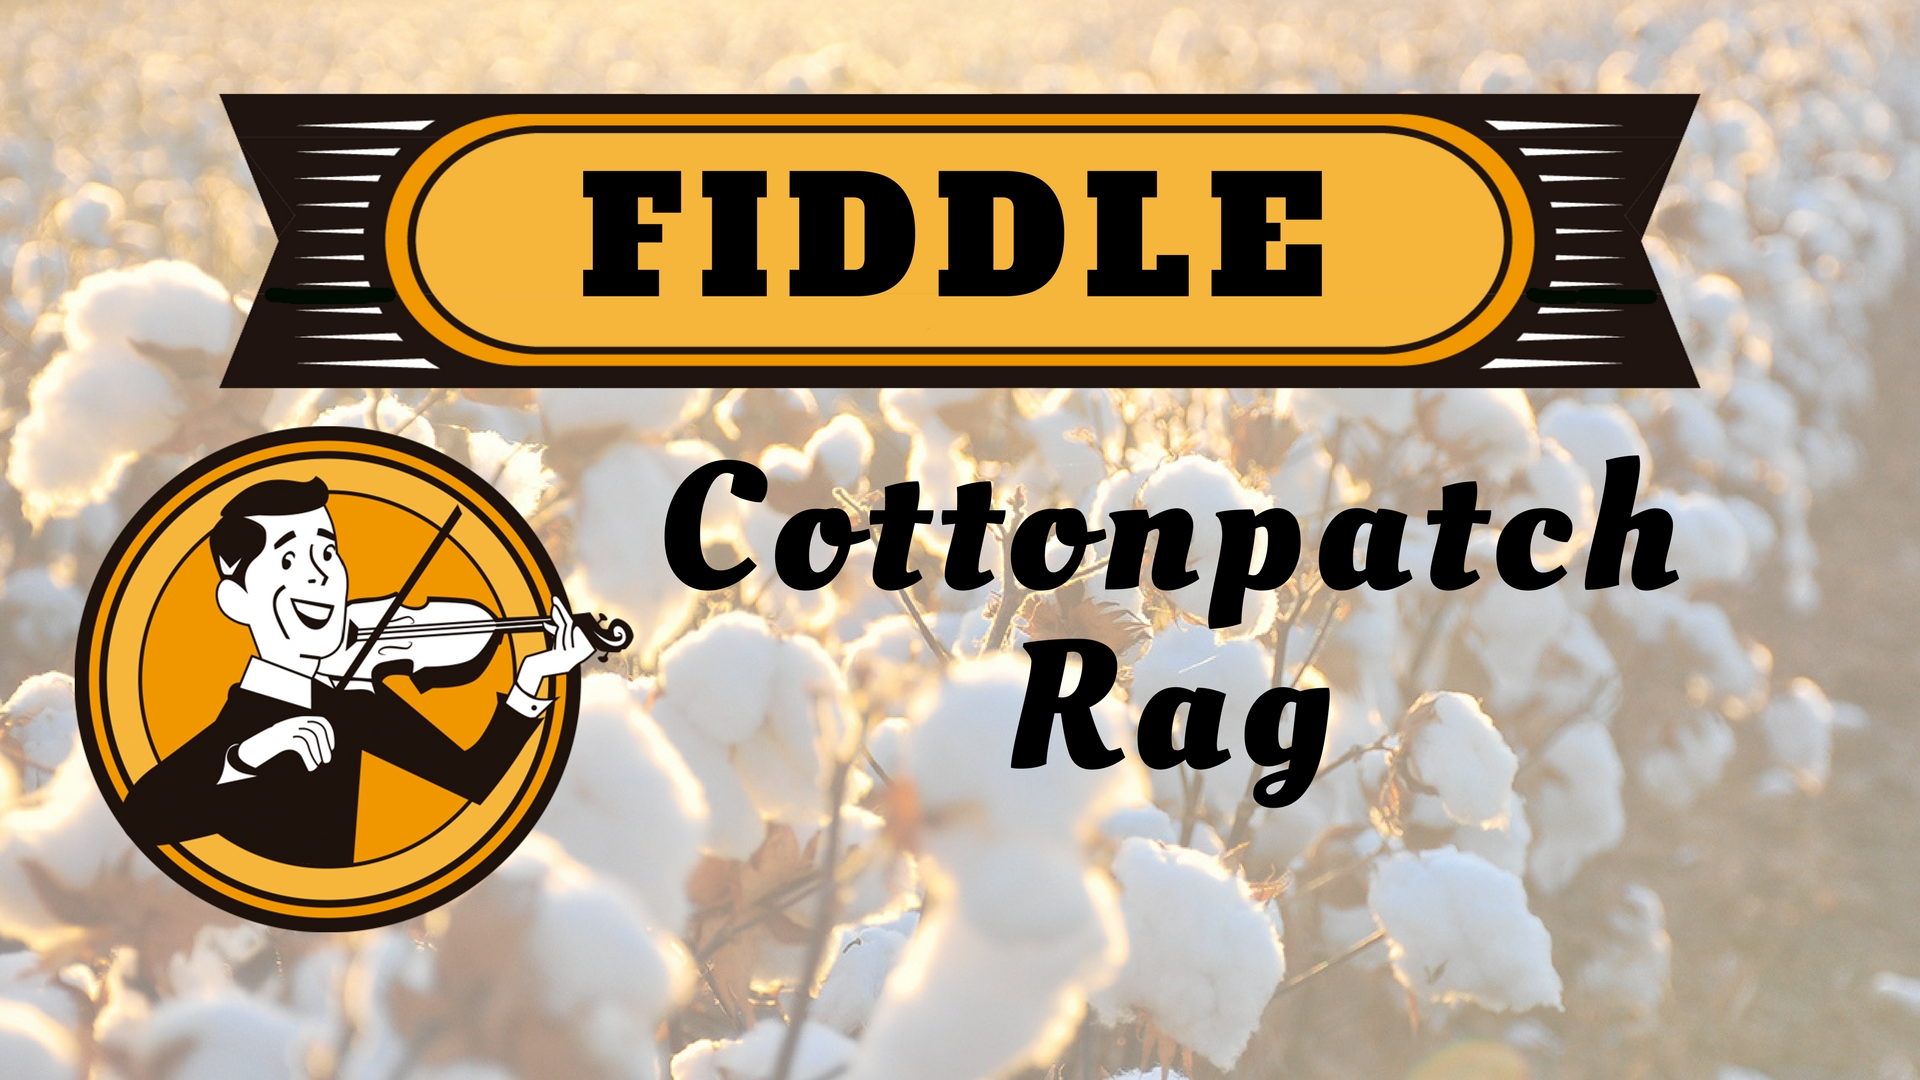 Fiddle Cottonpatch Rag (1)